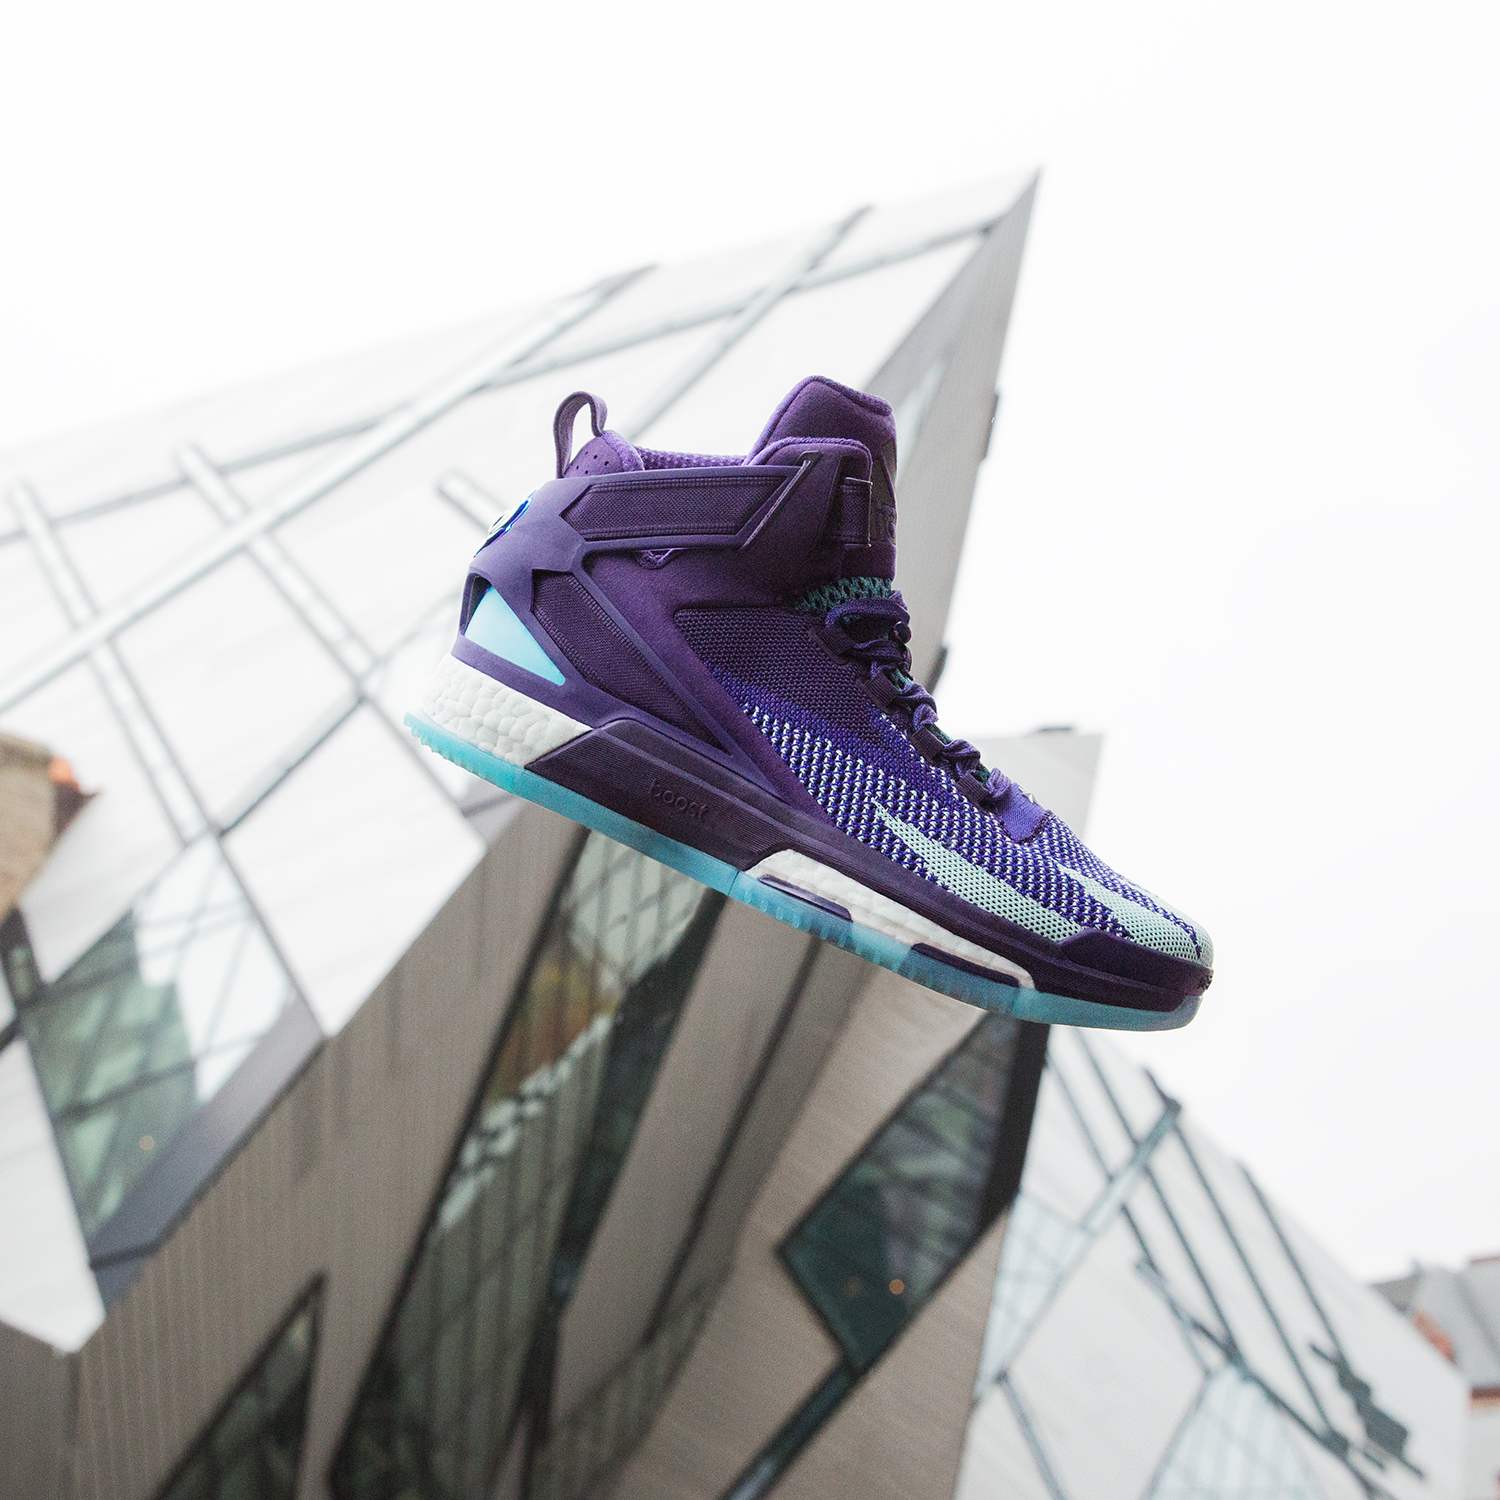 The adidas D Rose 6 Will Soon Come in PrimeKnit 1